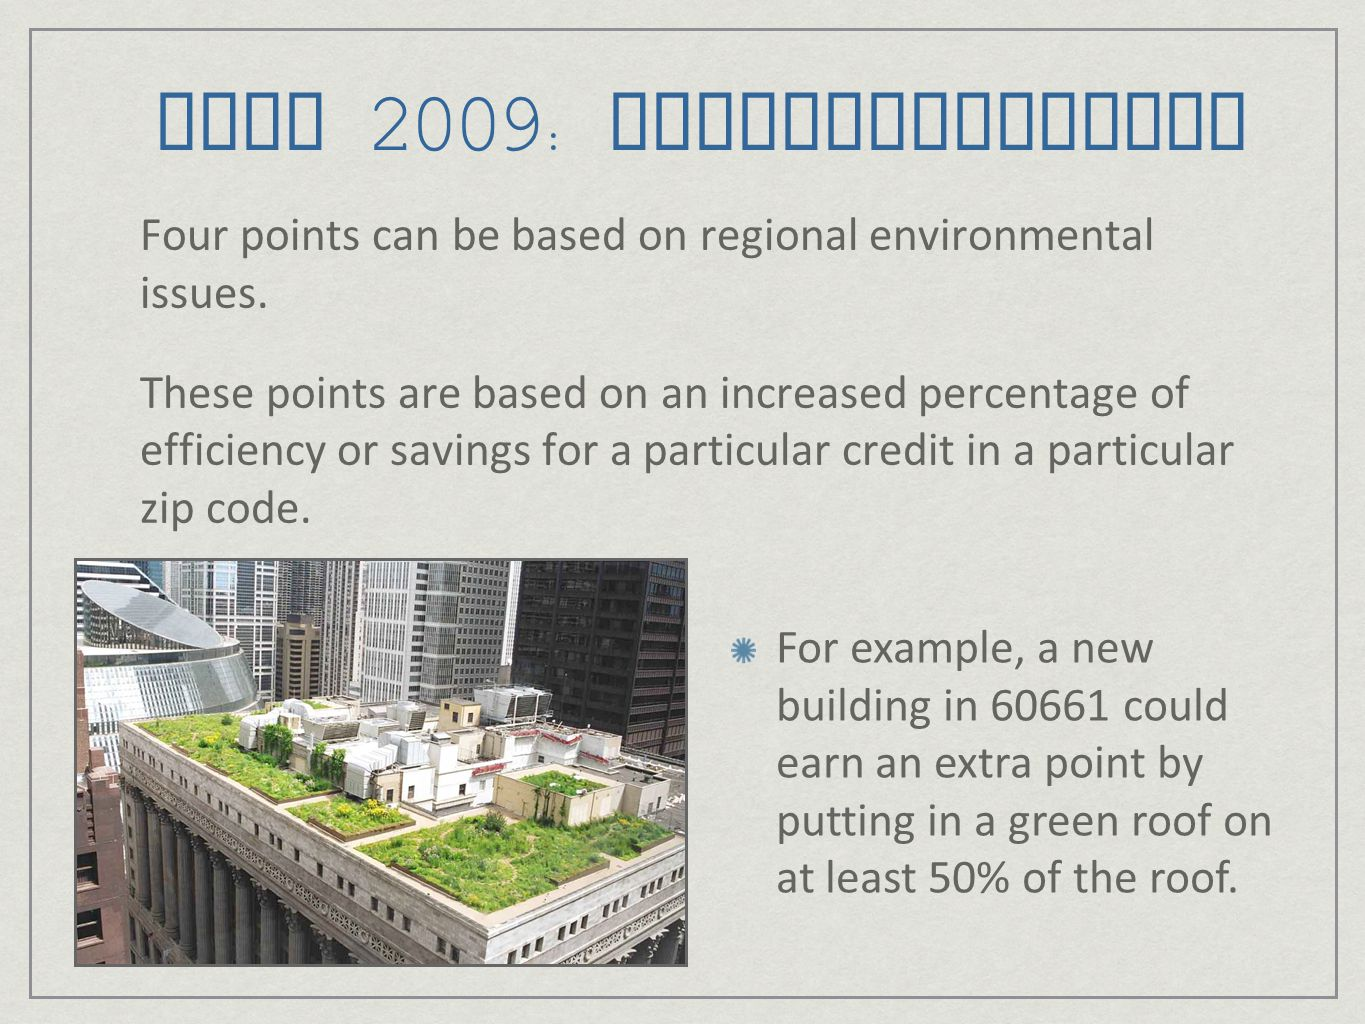 LEED 2009: New Construction – Big Gains Energy & Atmosphere: Very heavy emphasis on optimizing energy use & use of on-site renewable energy 7-19 points; 35 possible, up from 17 Sustainable Sites: Emphasis on access to public transit and development density 5-6 points; 26 possible, up from 14